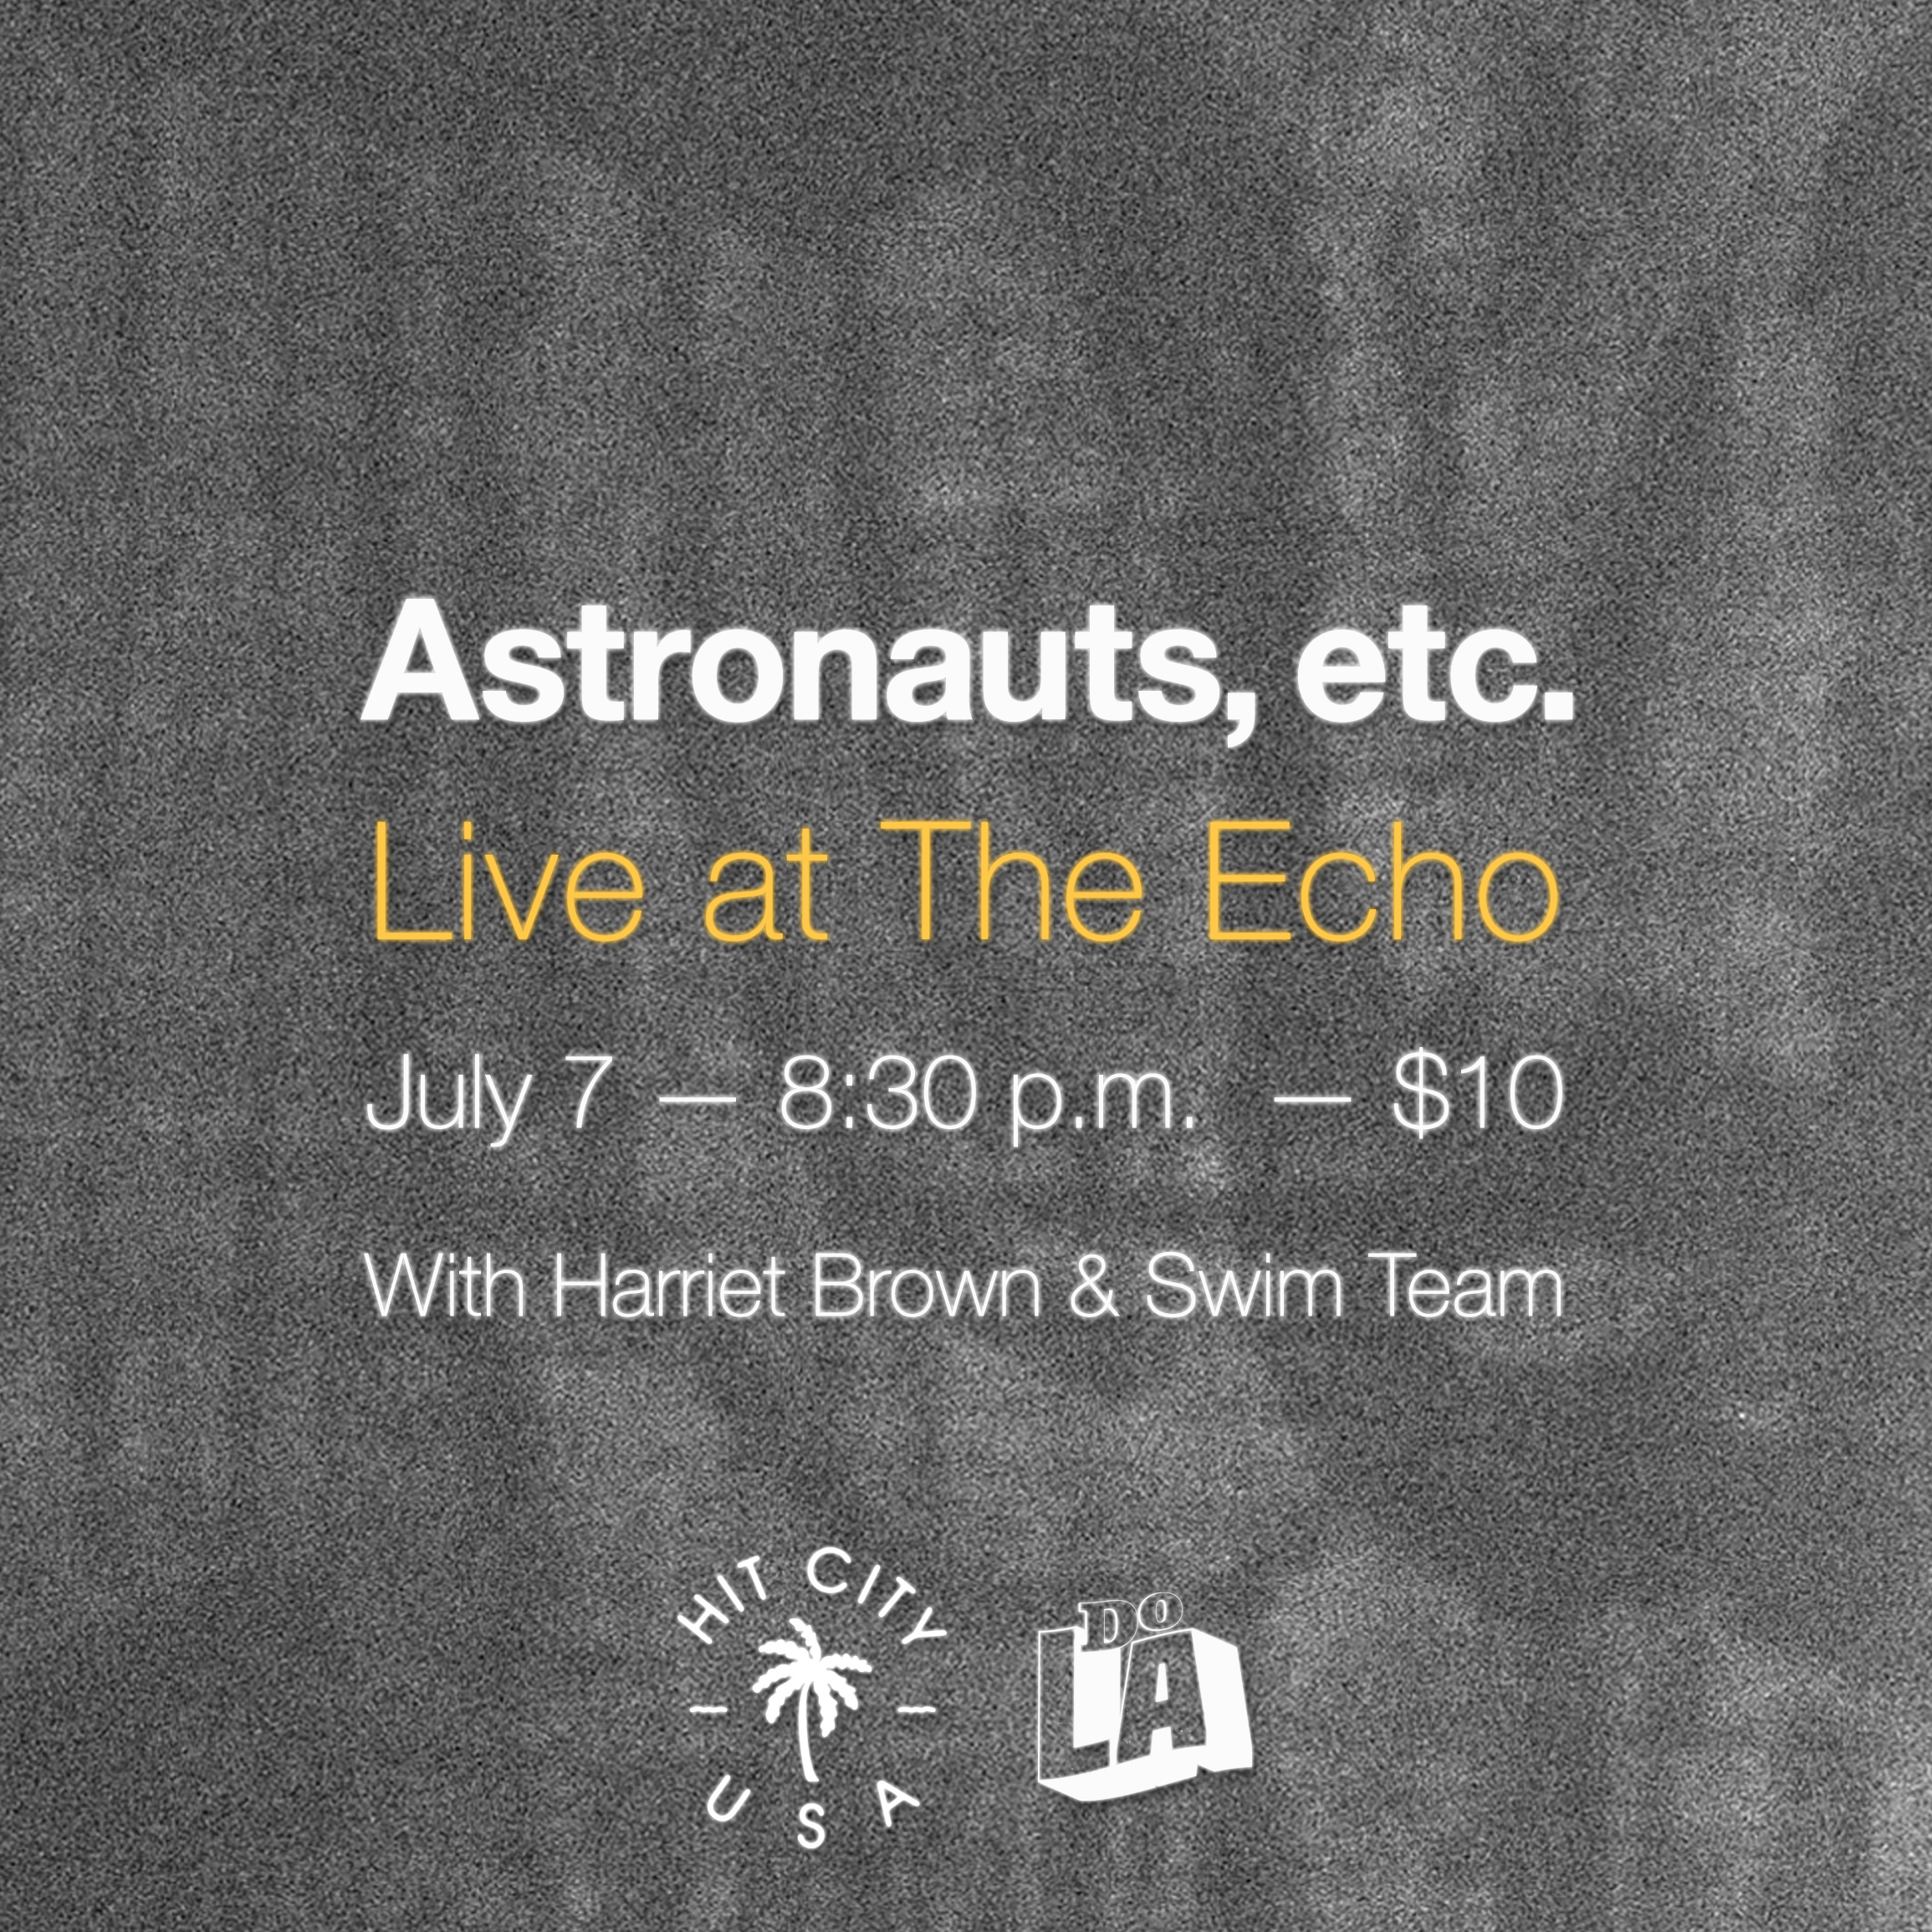 Astronauts, etc. LIVE at The Echo